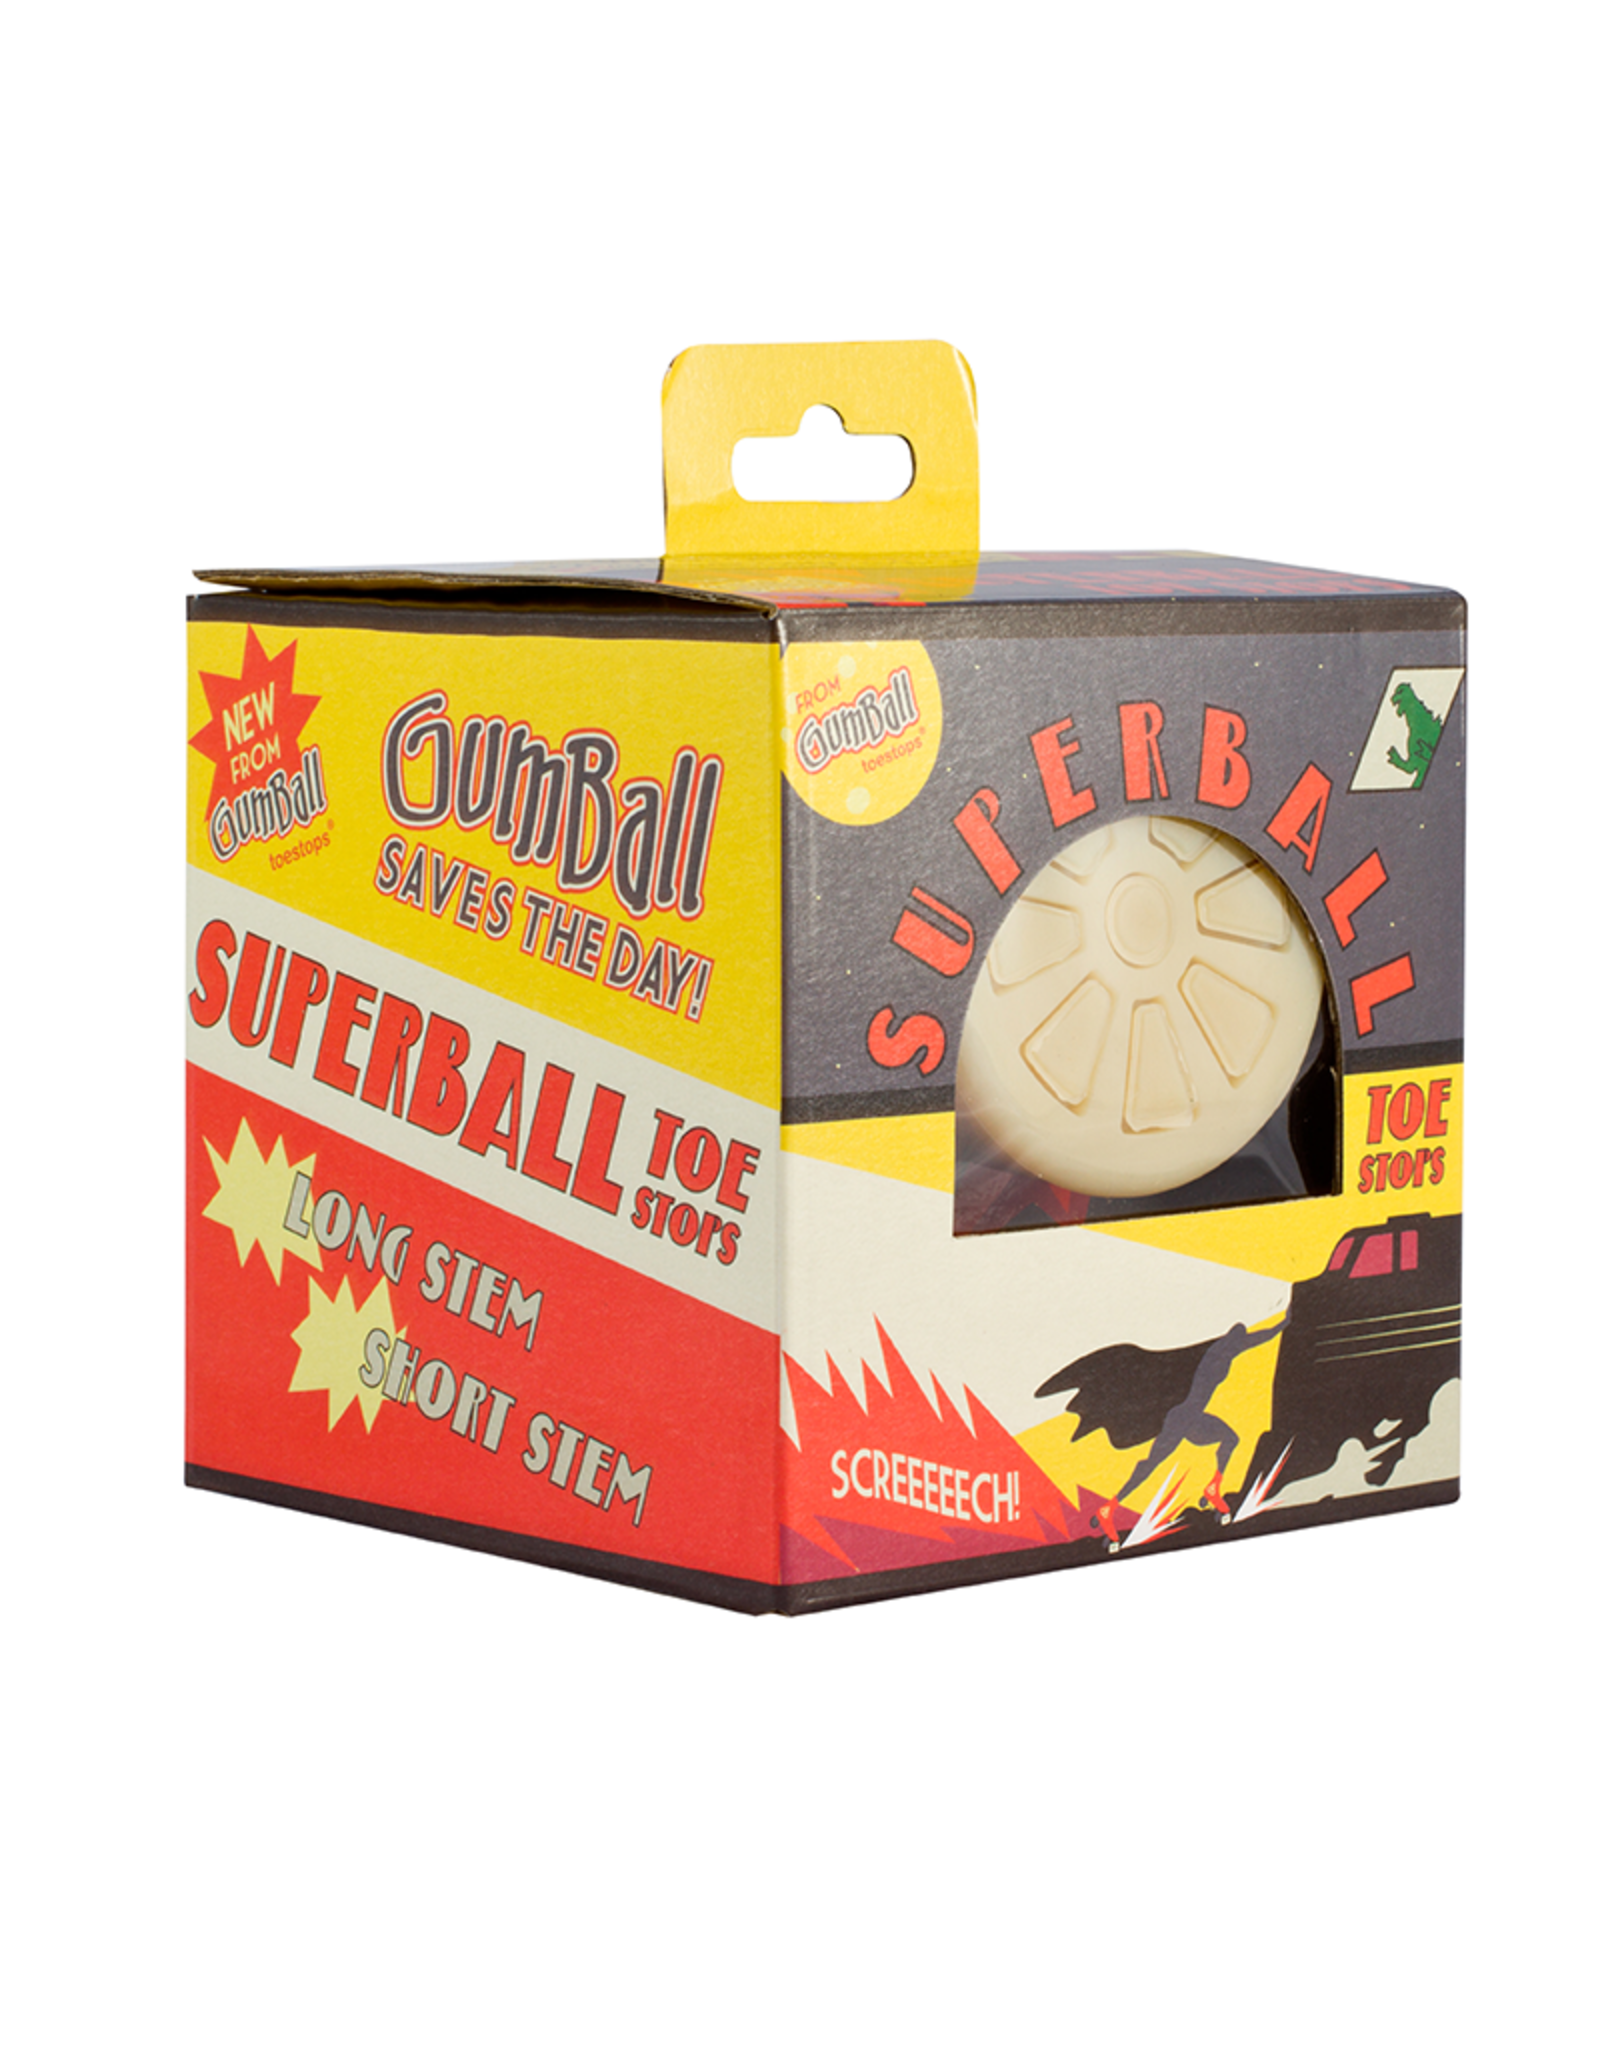 Riedell Superball Toe Stops